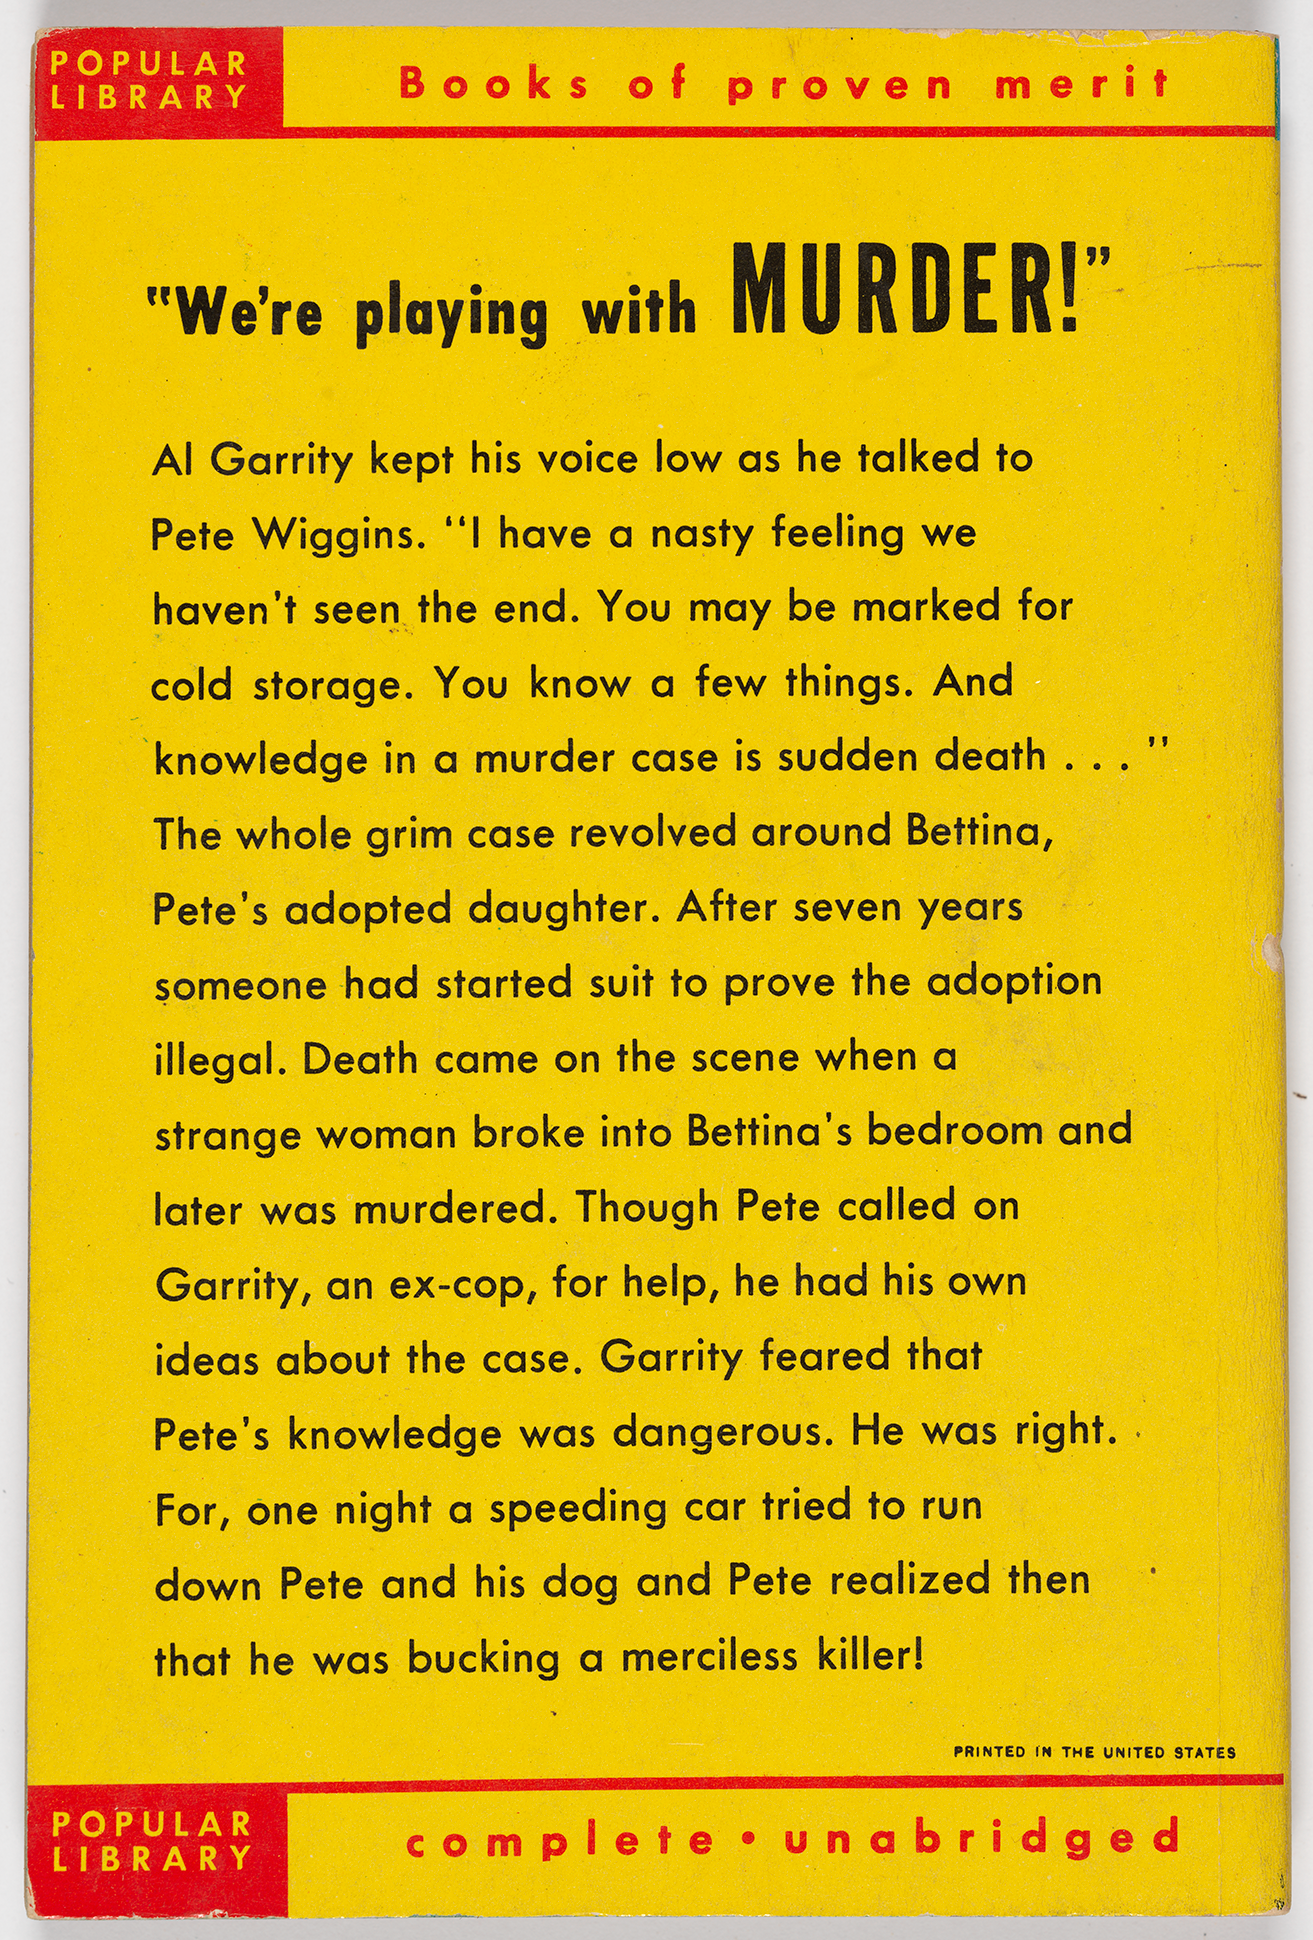 Murder at Midnight (Paperback 461), back cover